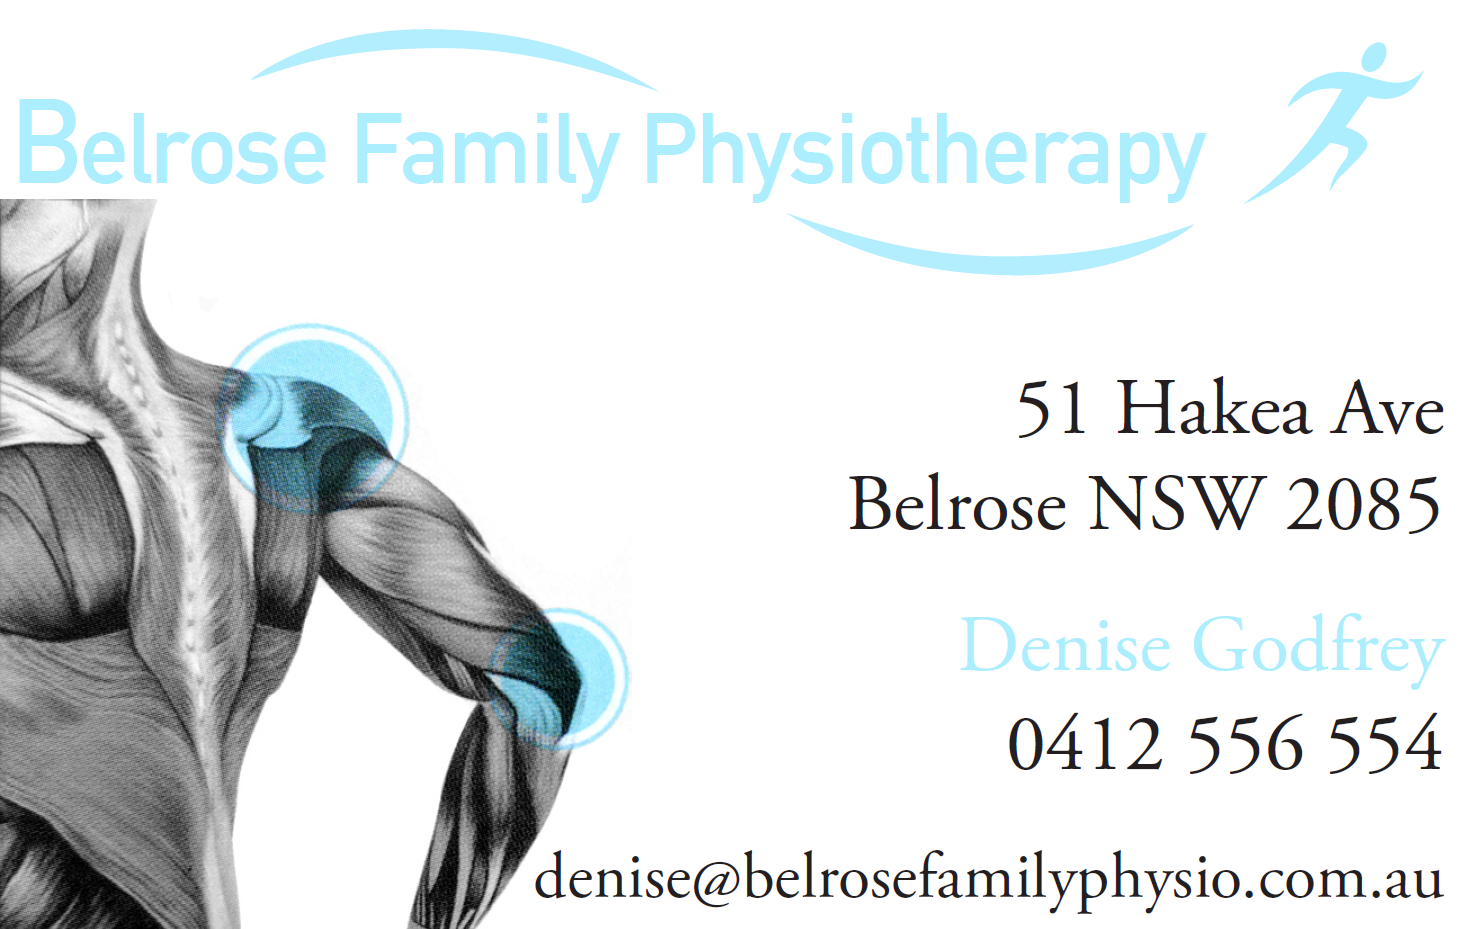 Belrose Family Physio